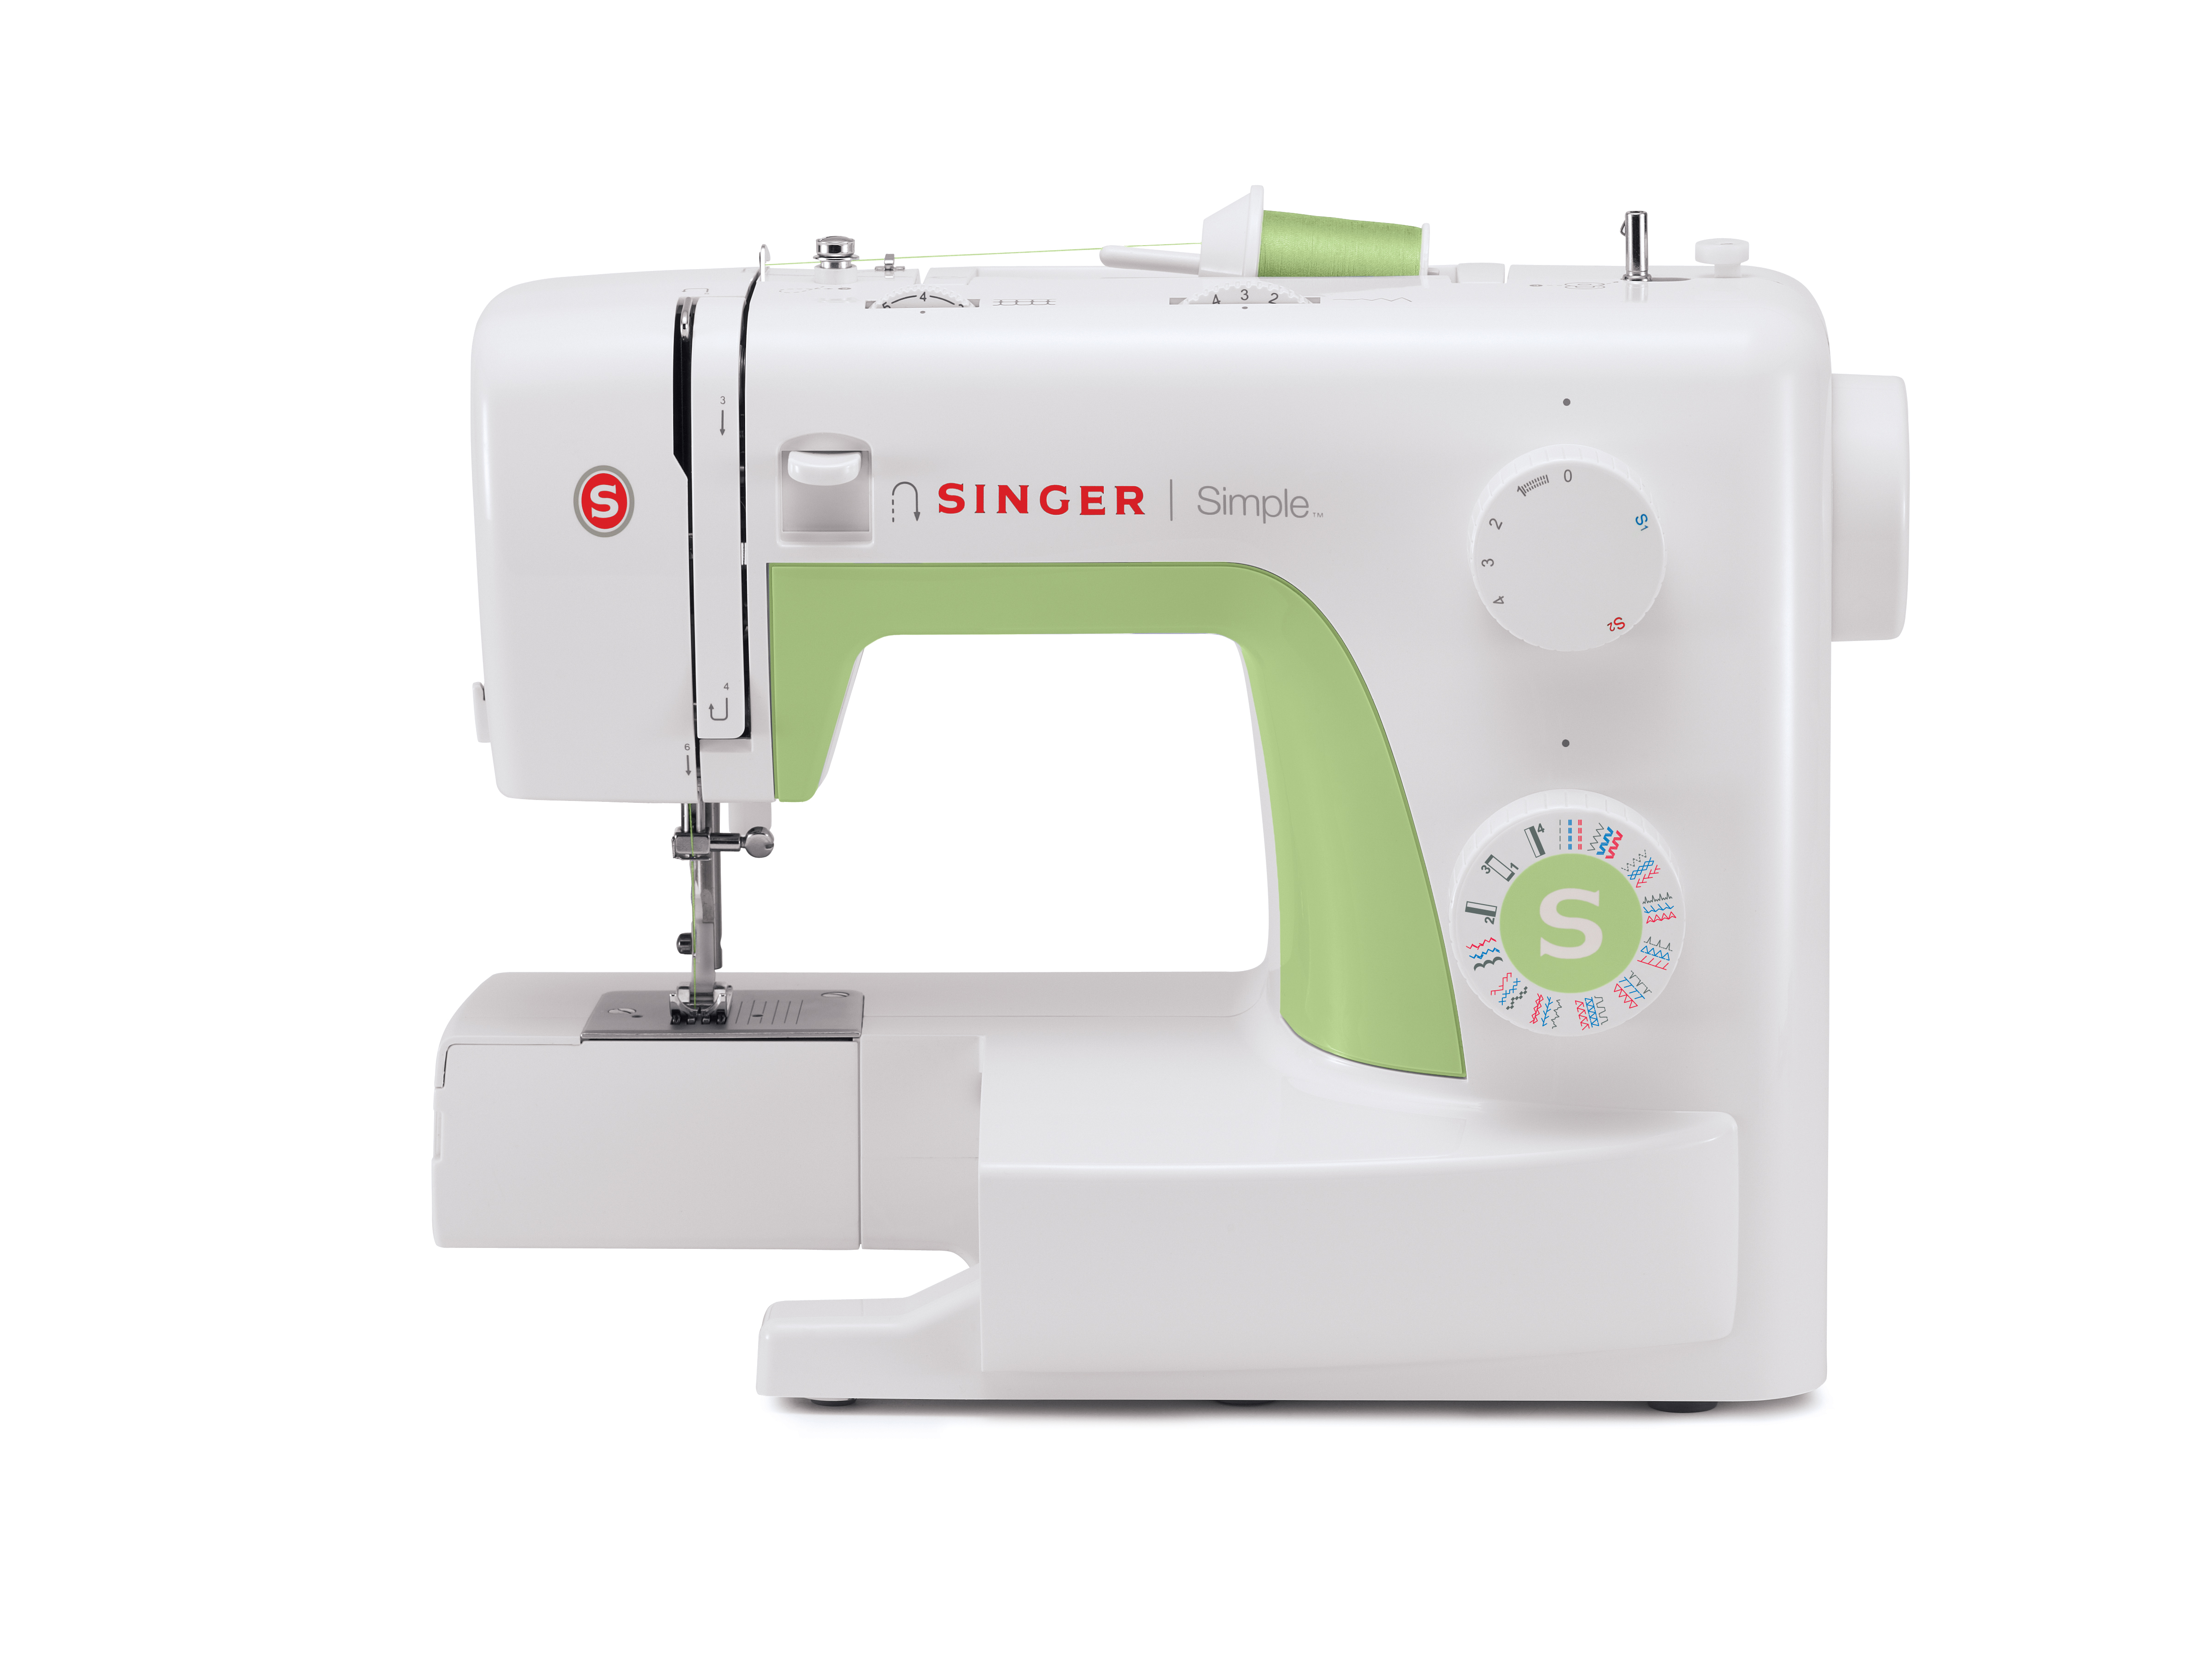 Simple 3229 - Singer Mechanical Sewing Machines